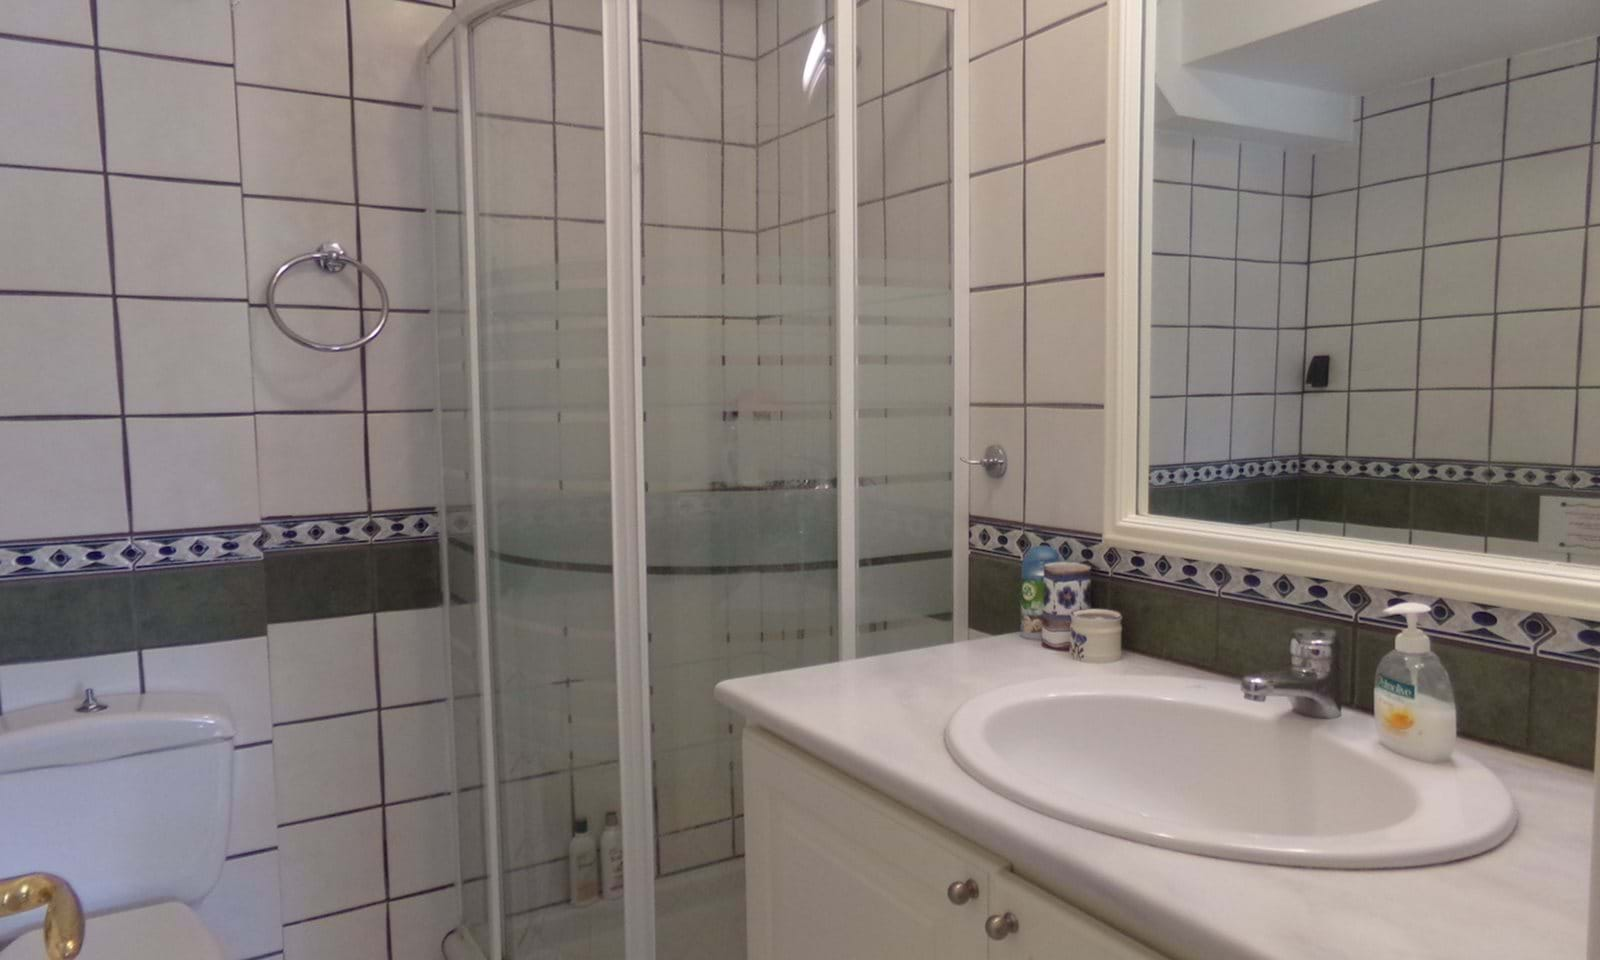 Bathroom - shower and toilet